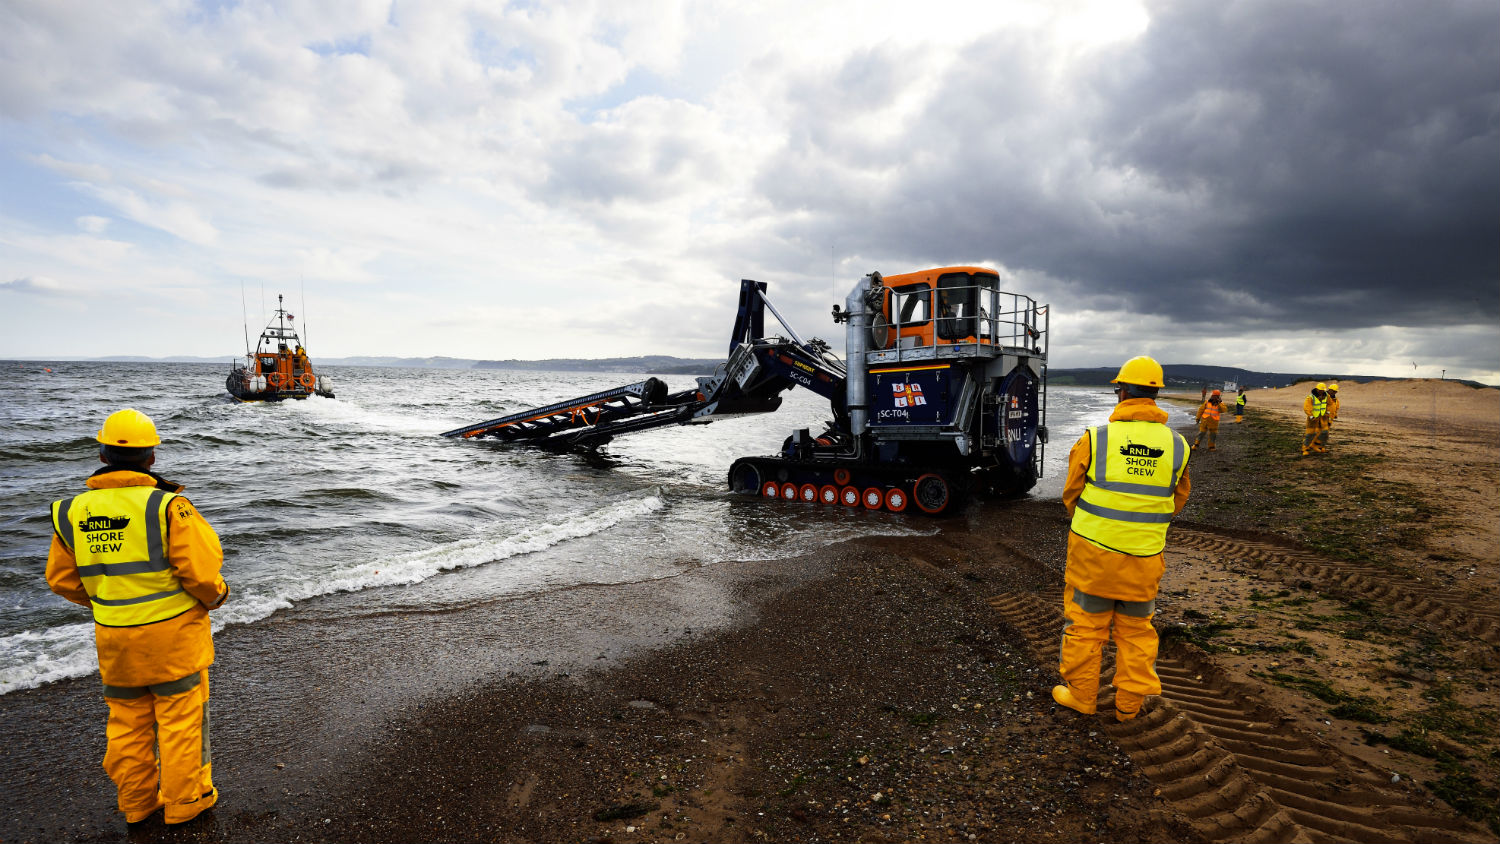 Exmouth RNLI's Shannon class lifeboat, R and J Wellburn, being launched into the sea.